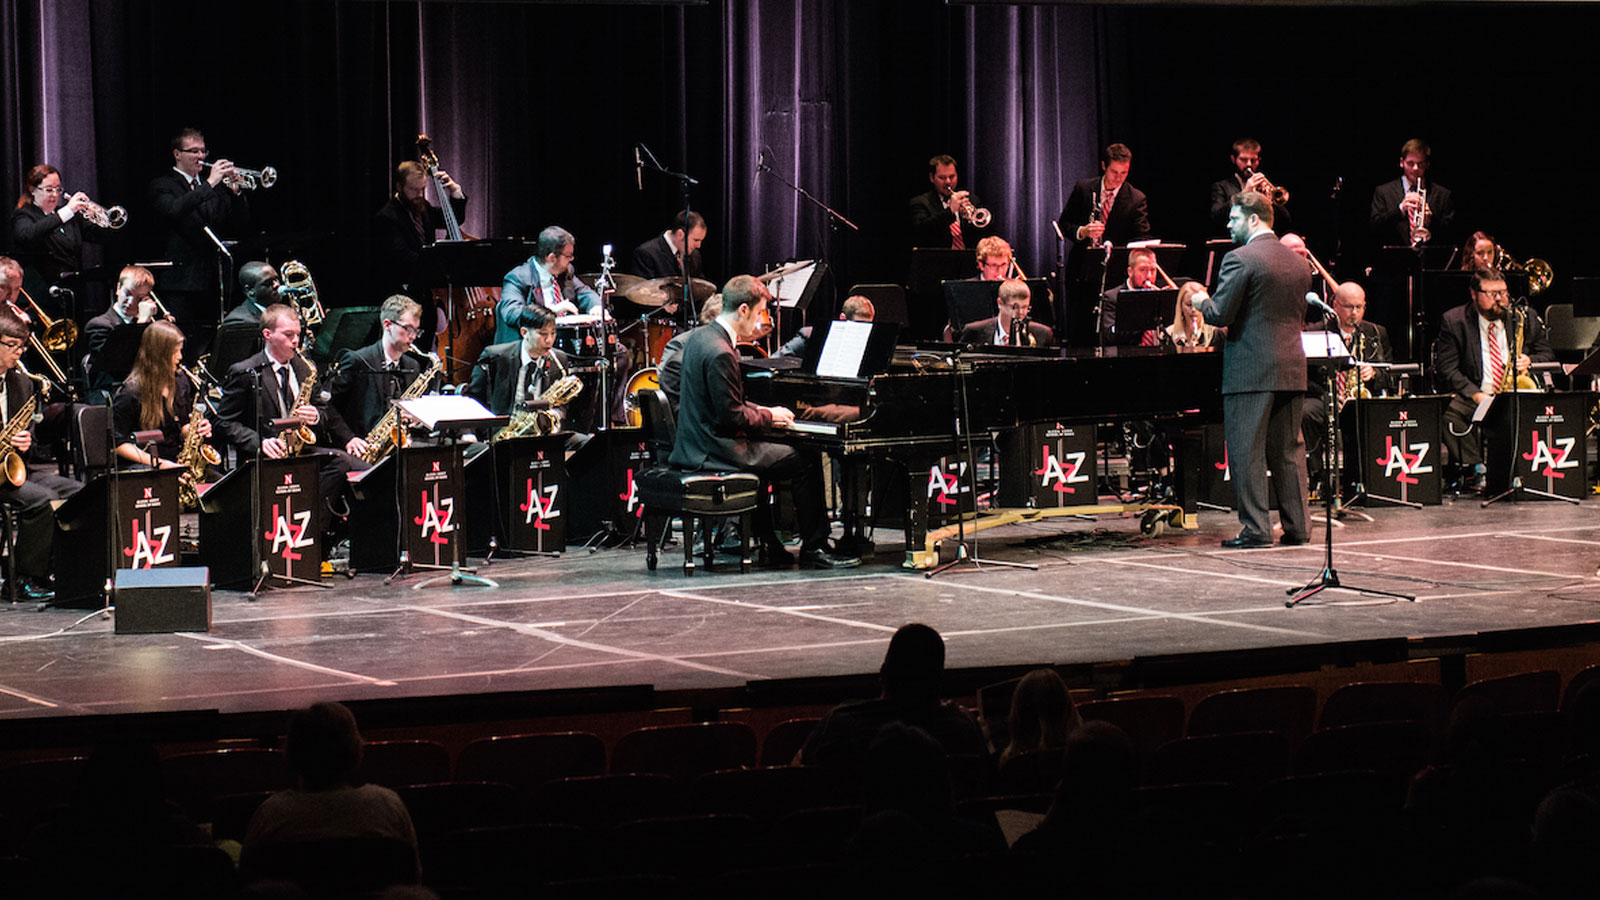 Jazz Orchestra plays on stage